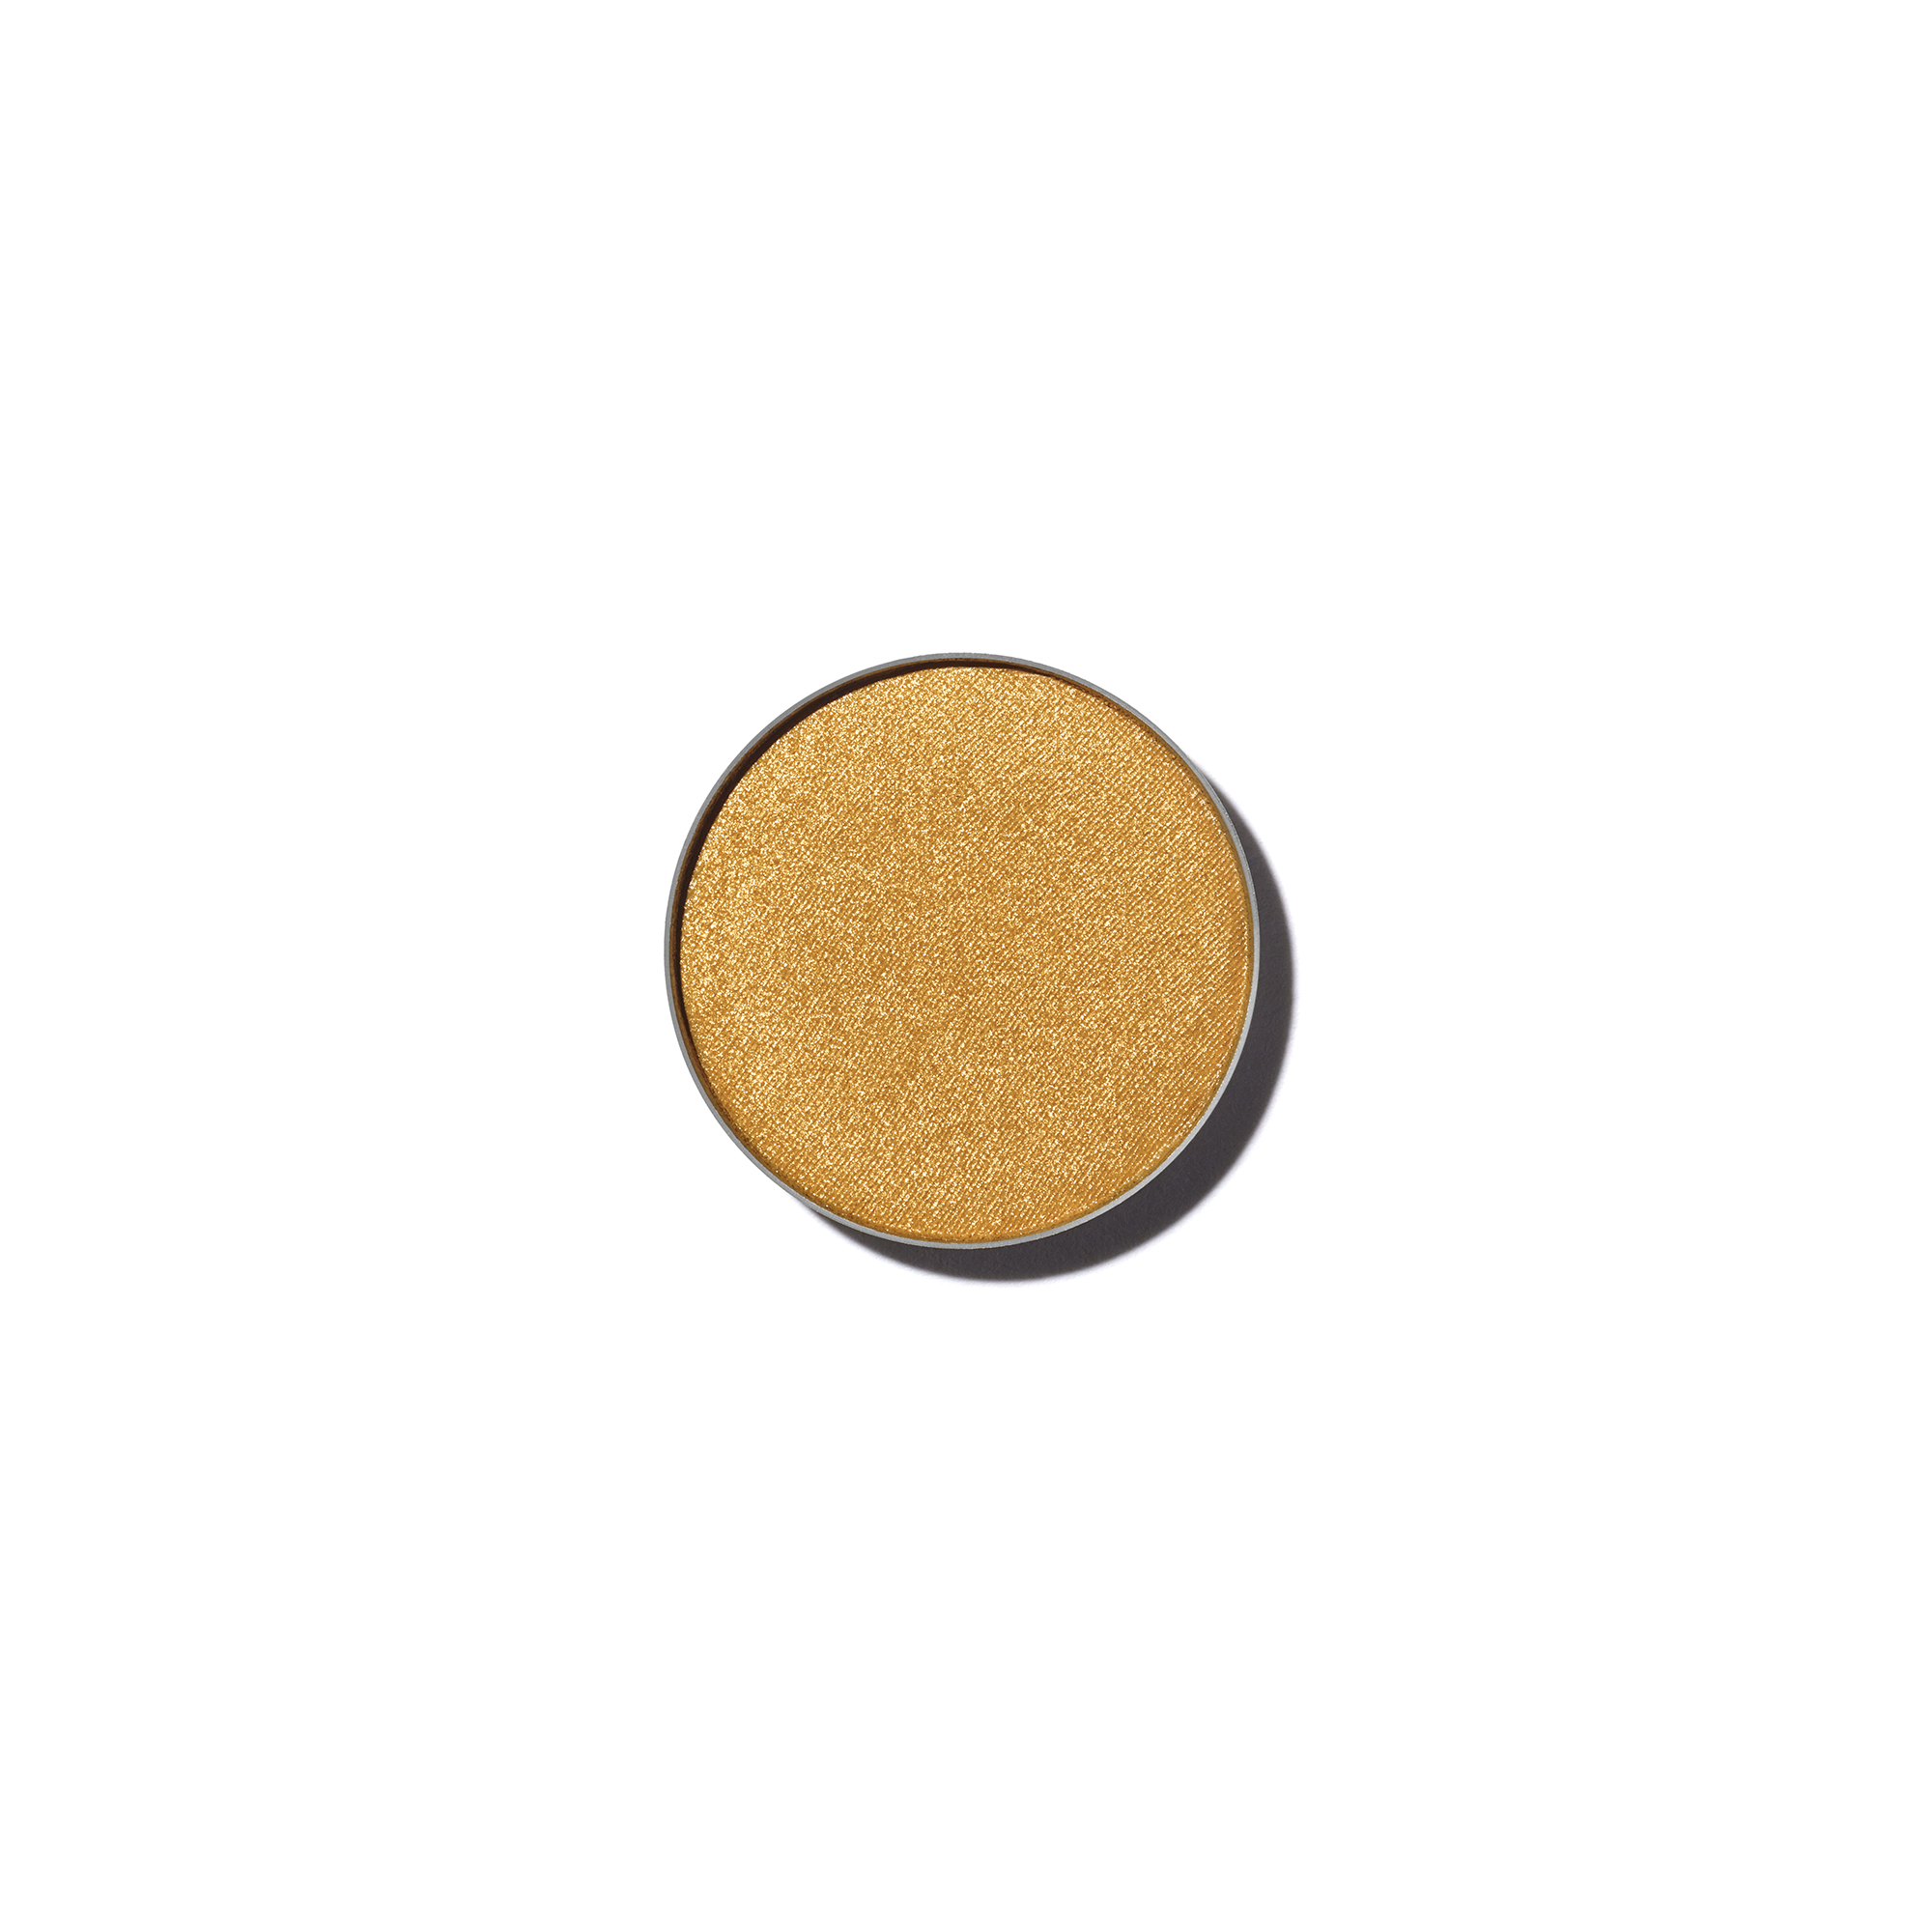 Eyeshadow Singles - Gold Rush